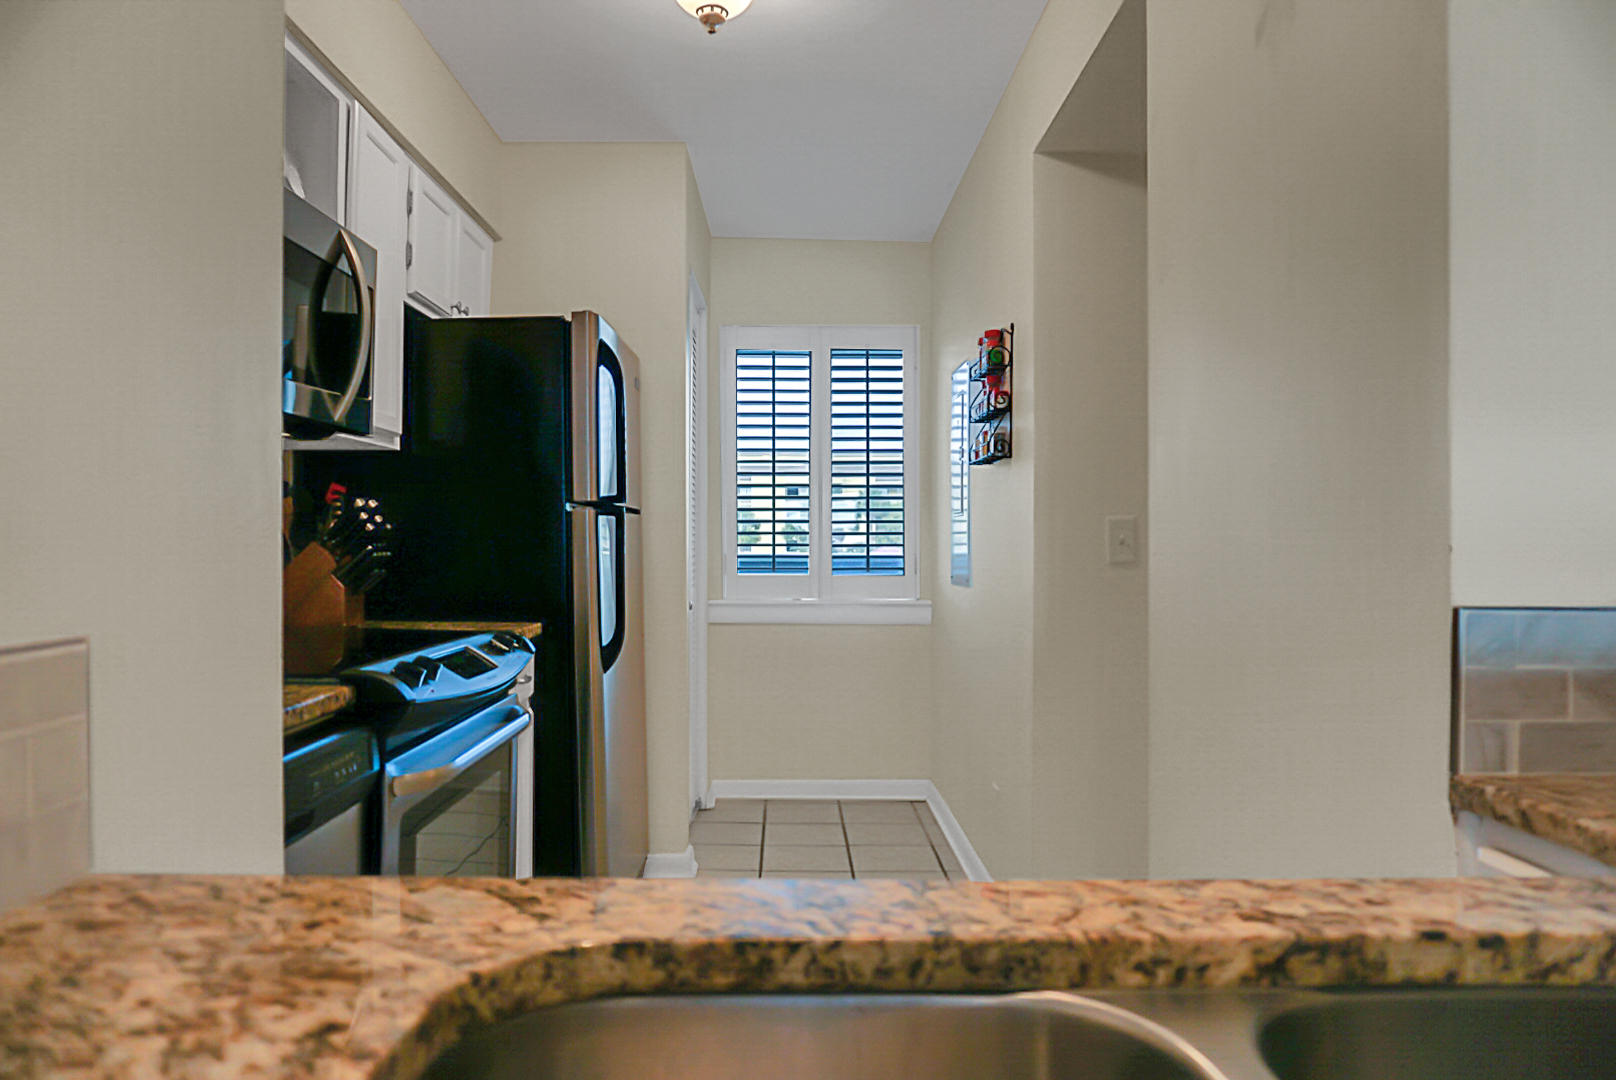 Mariners Cay Homes For Sale - 45 Mariners Cay, Folly Beach, SC - 37